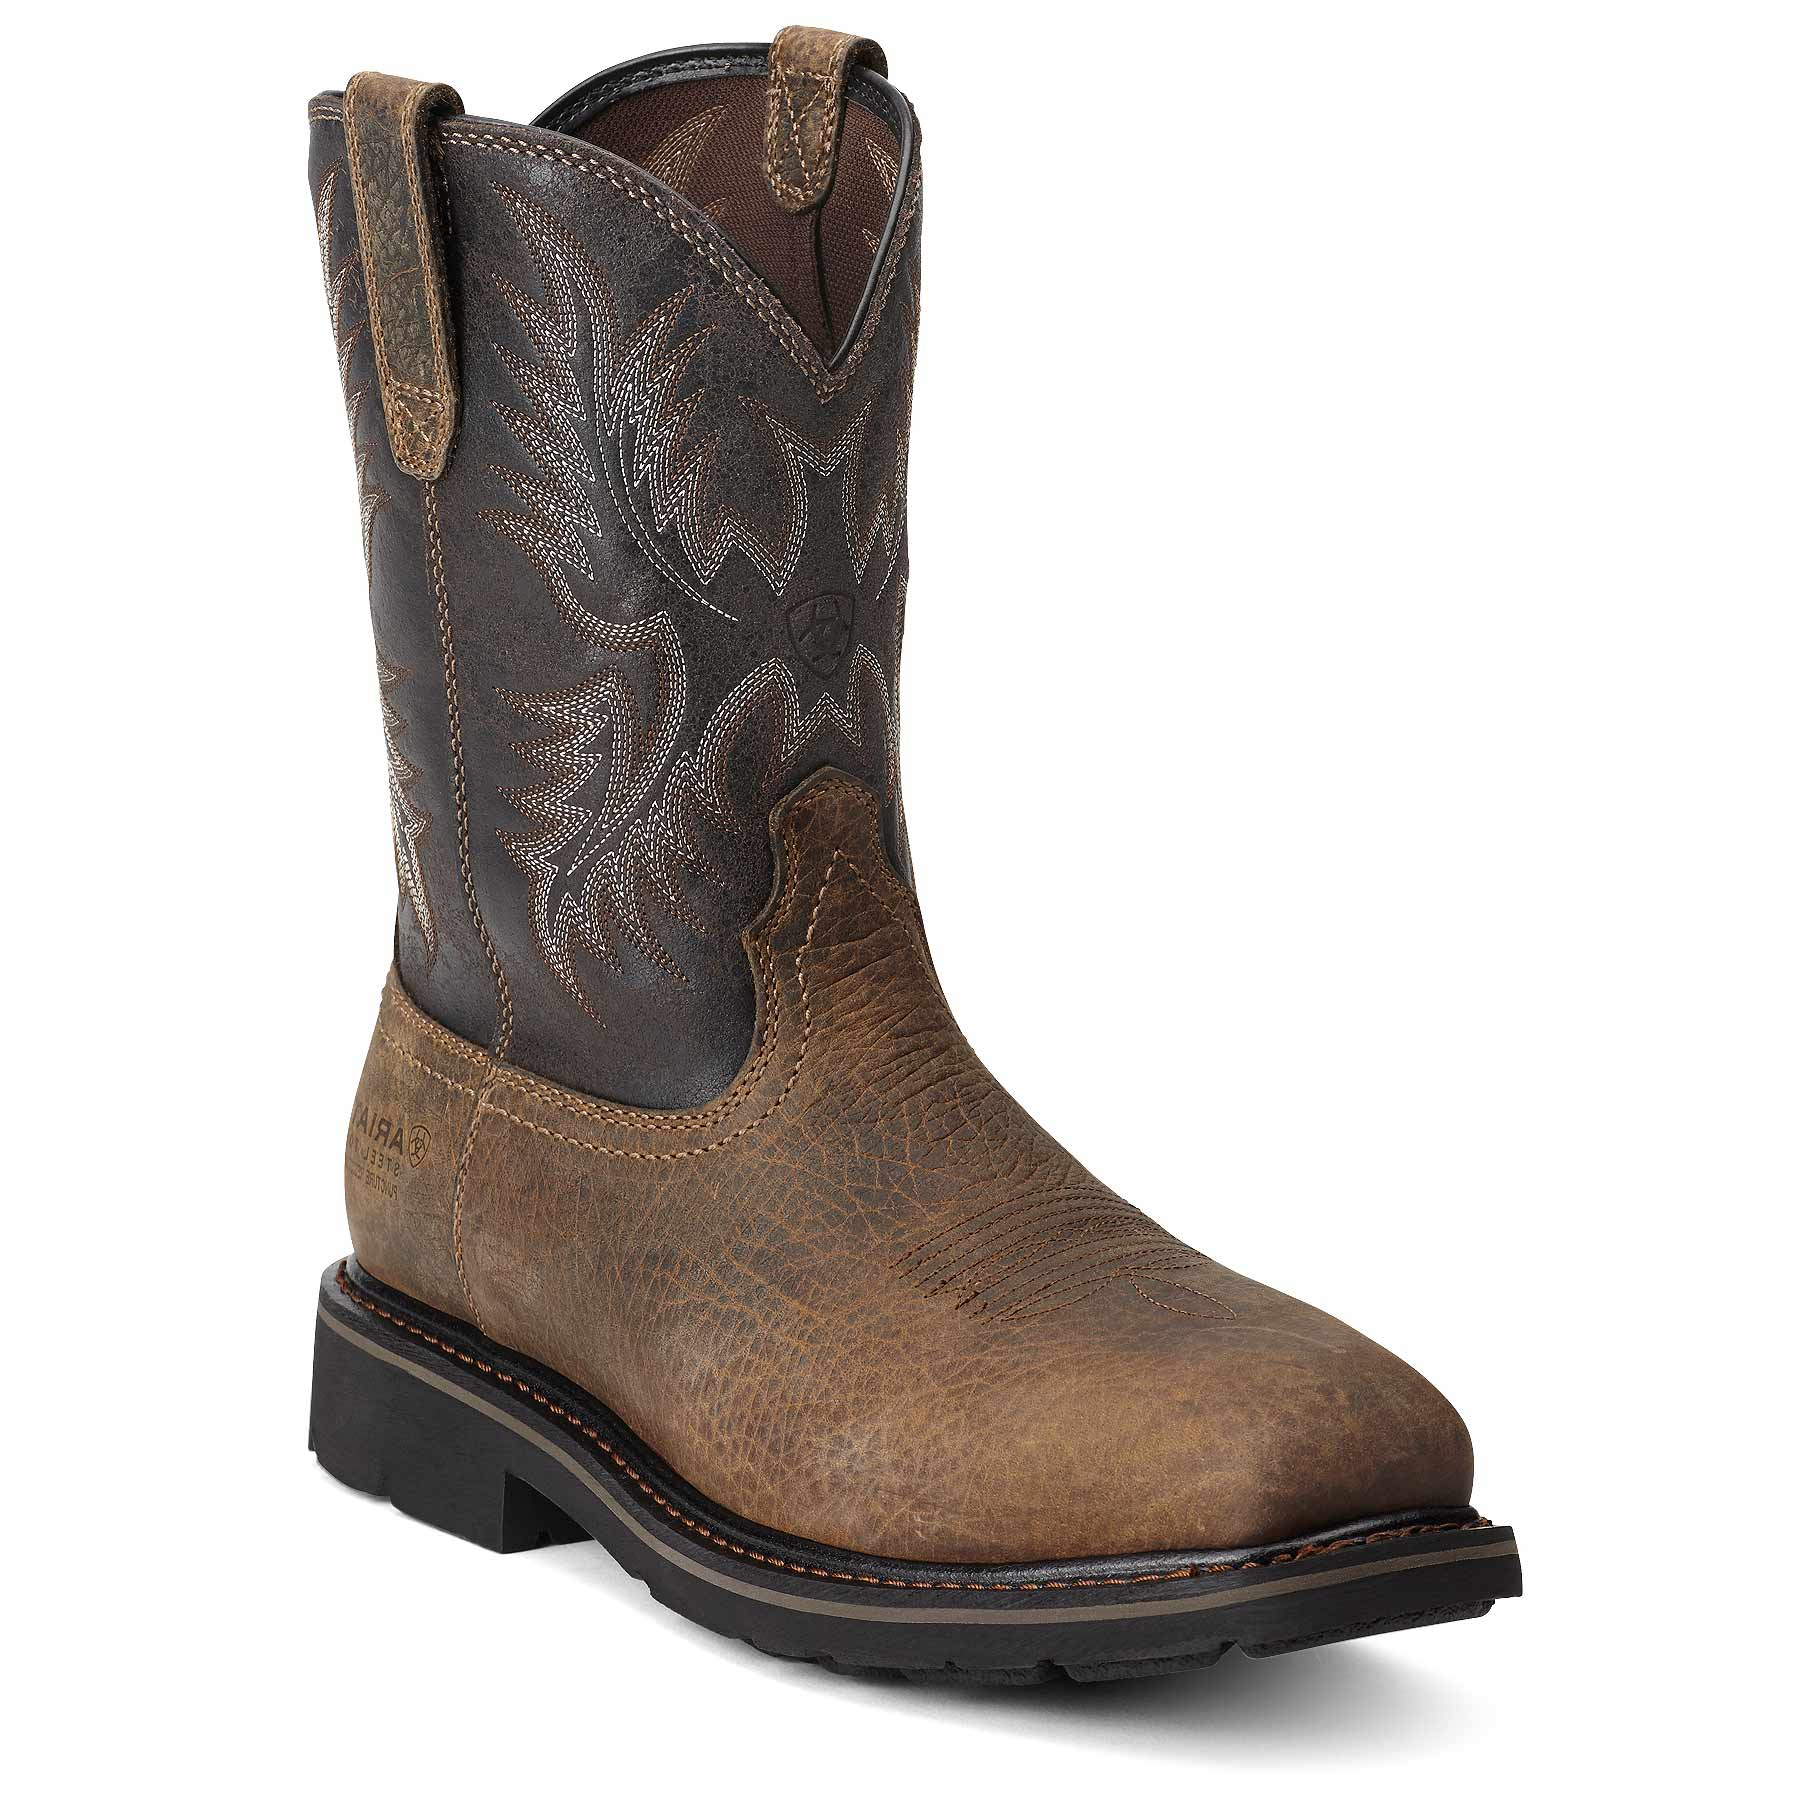 Men's Ariat Sierra Wide Square Steel Toe Puncture Boot, Size: 7.5 D, Earth/Black Crunch Full Grain Leather